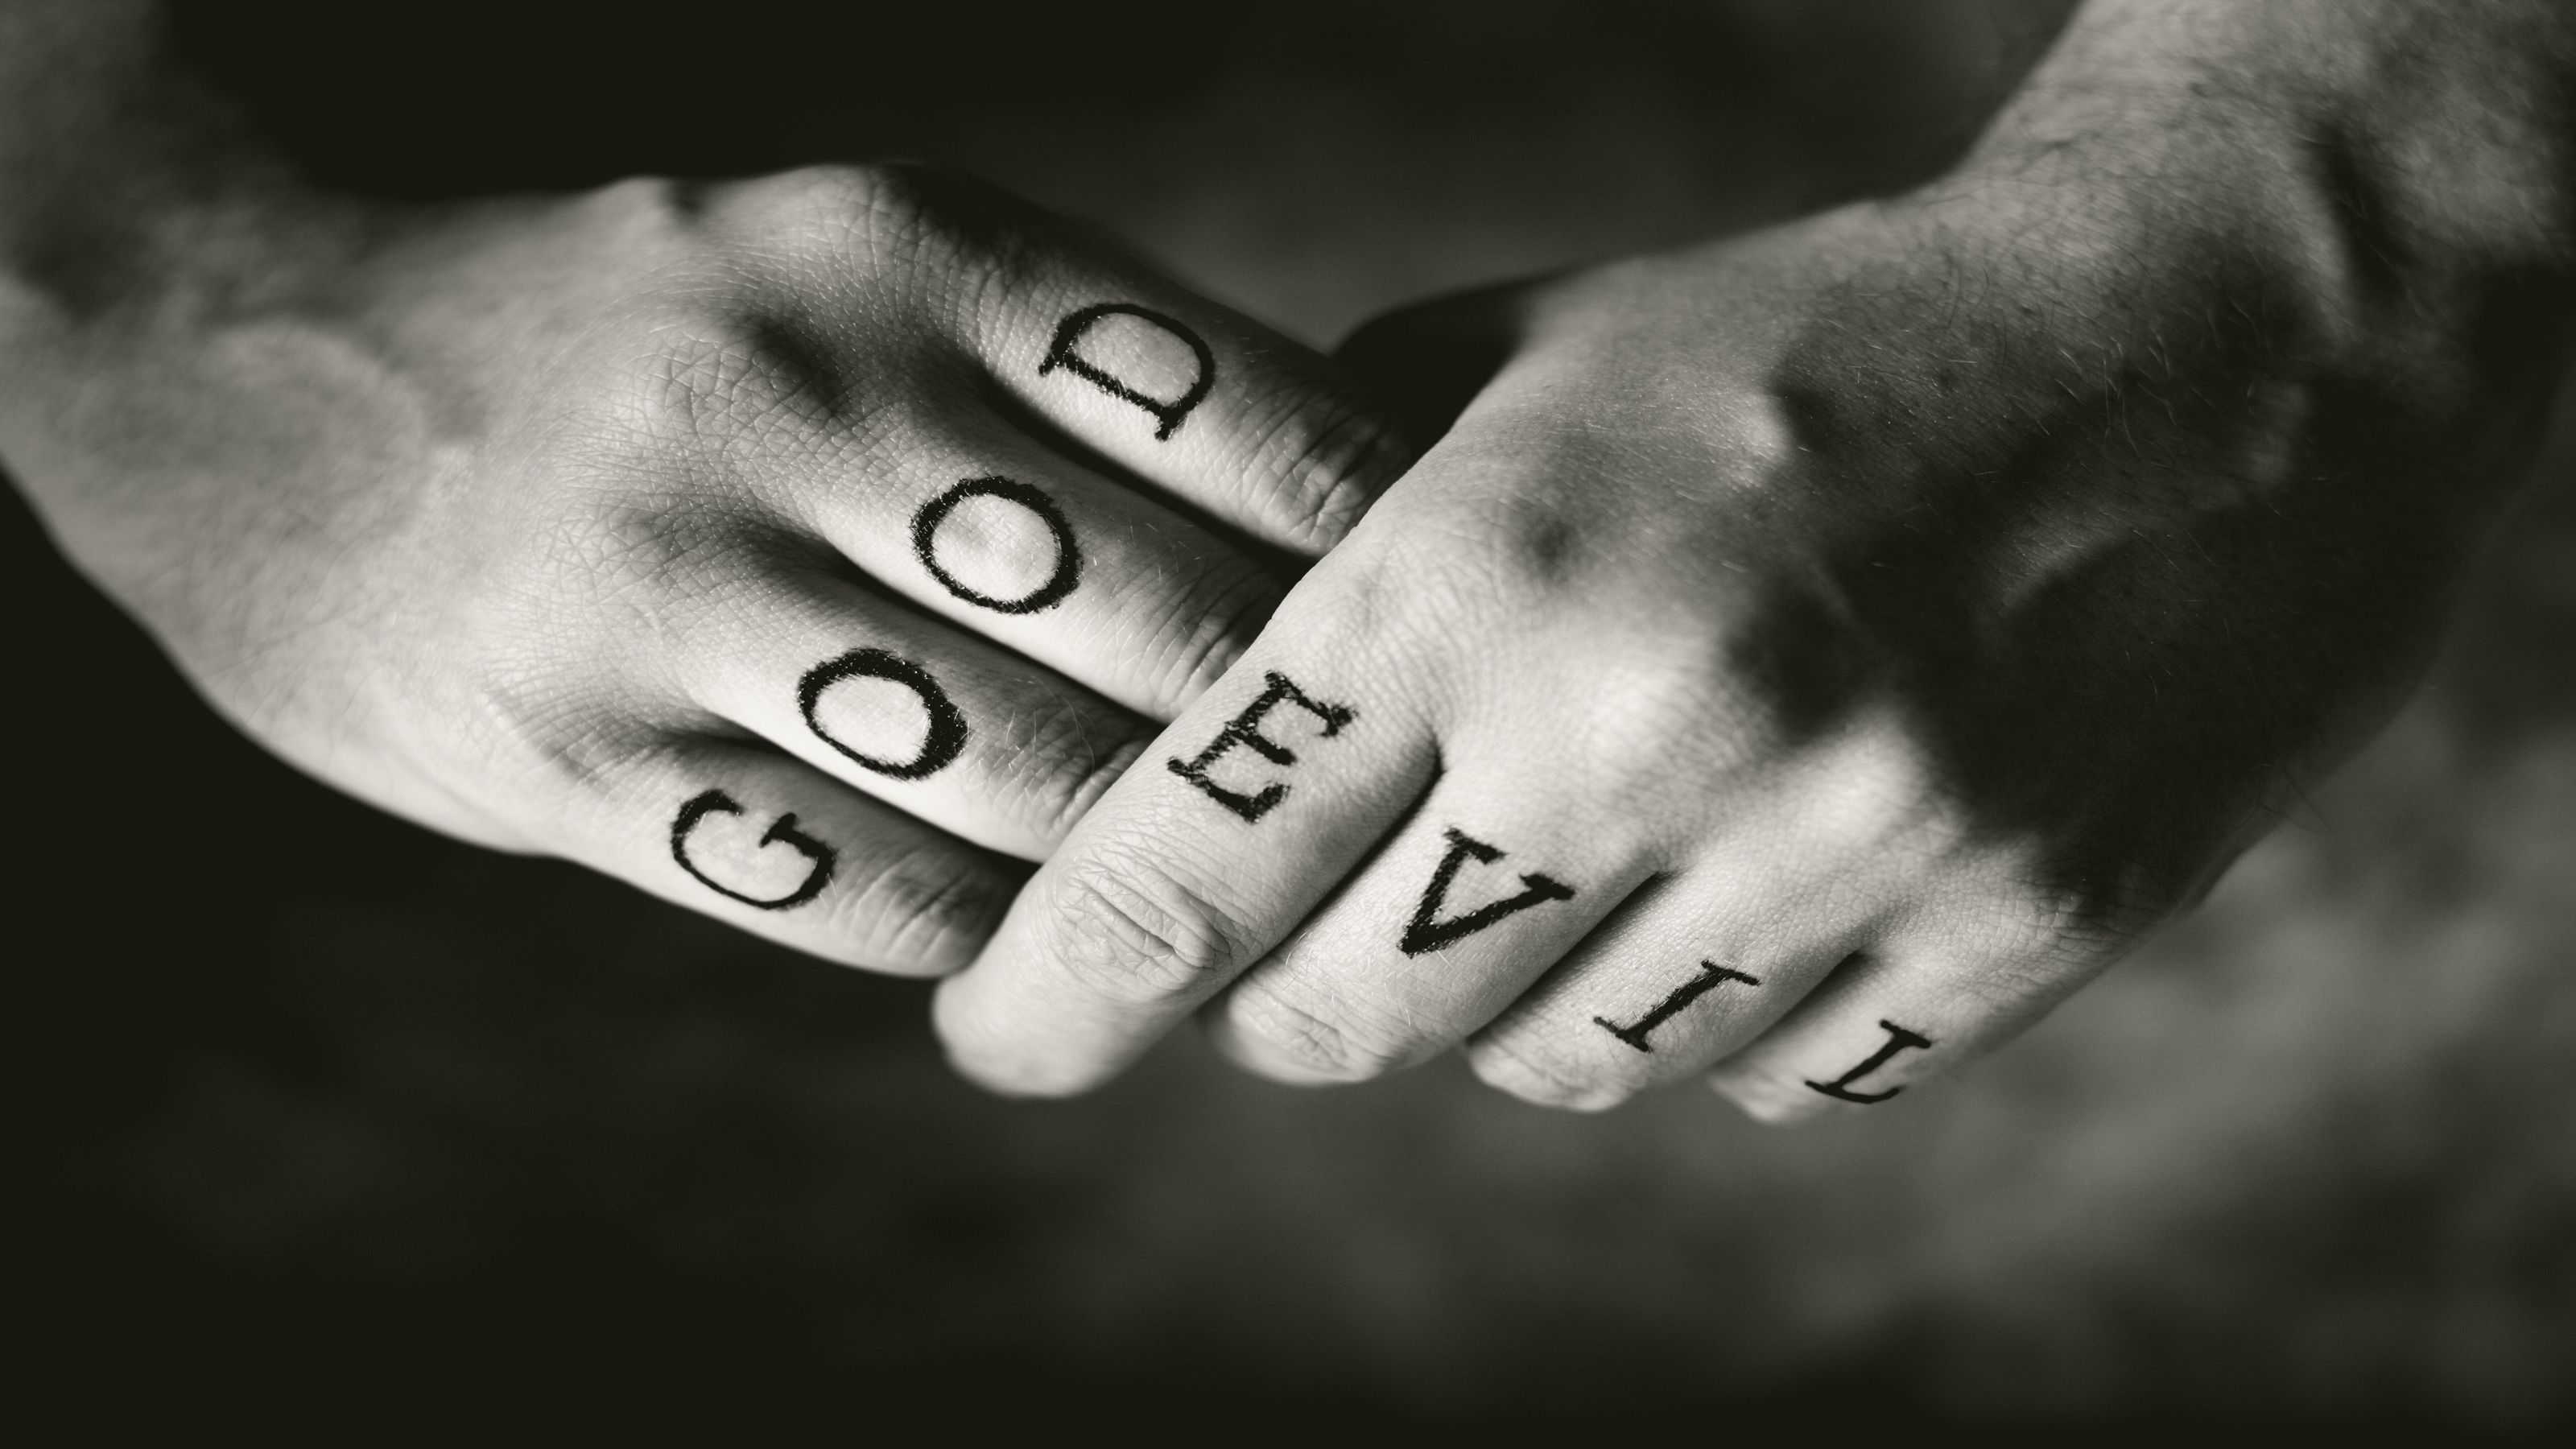 good and evil written across the knuckles of hands